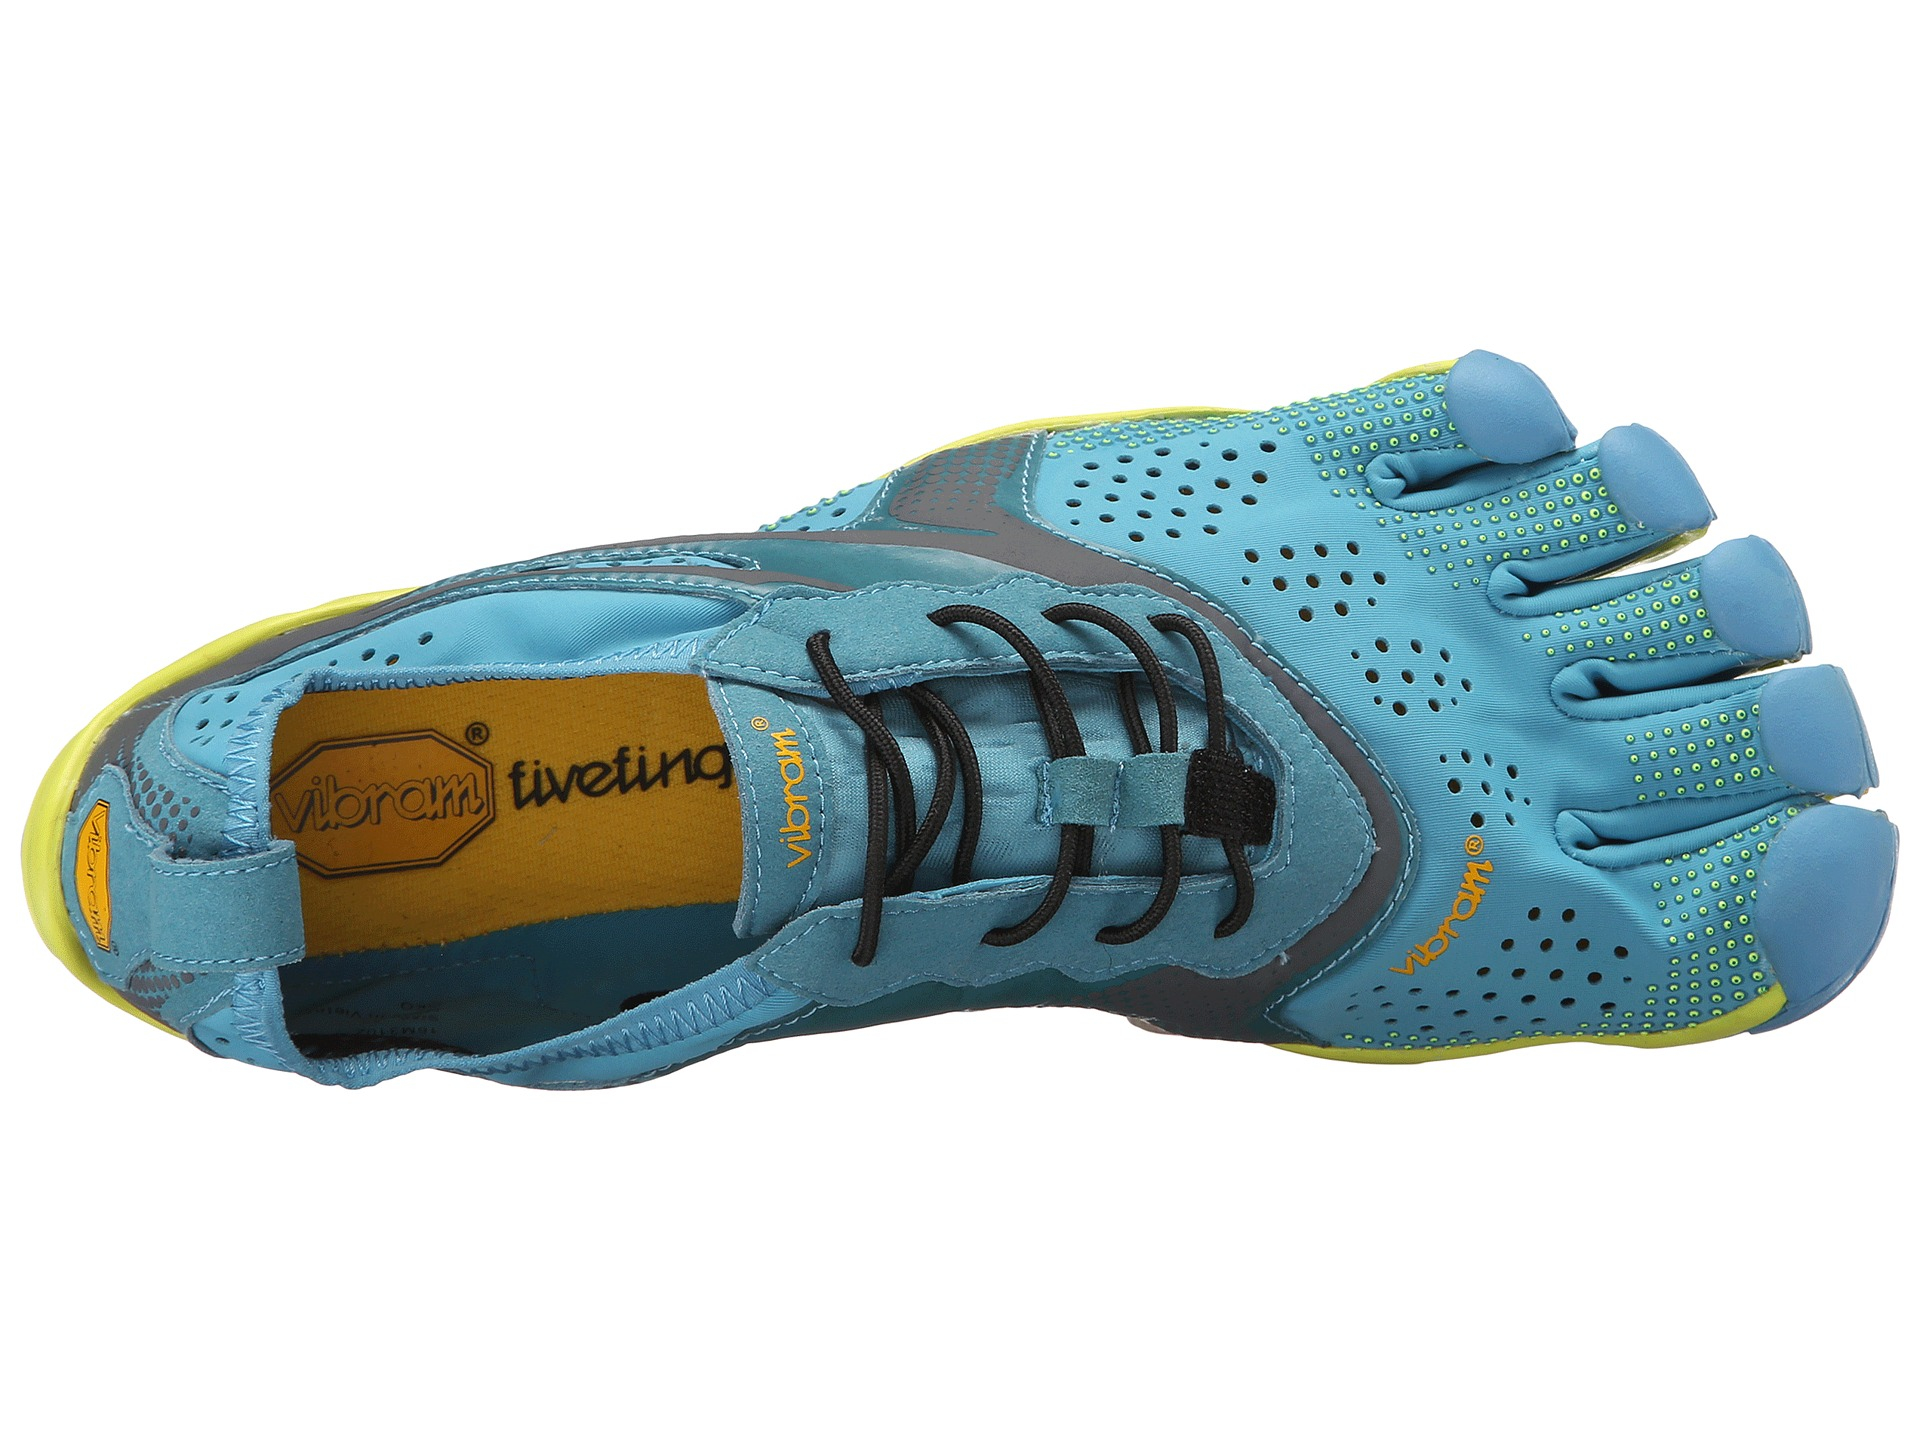 Vibram Shoes Mens Images About Fivefingers On Pinterest Running Casual Danner